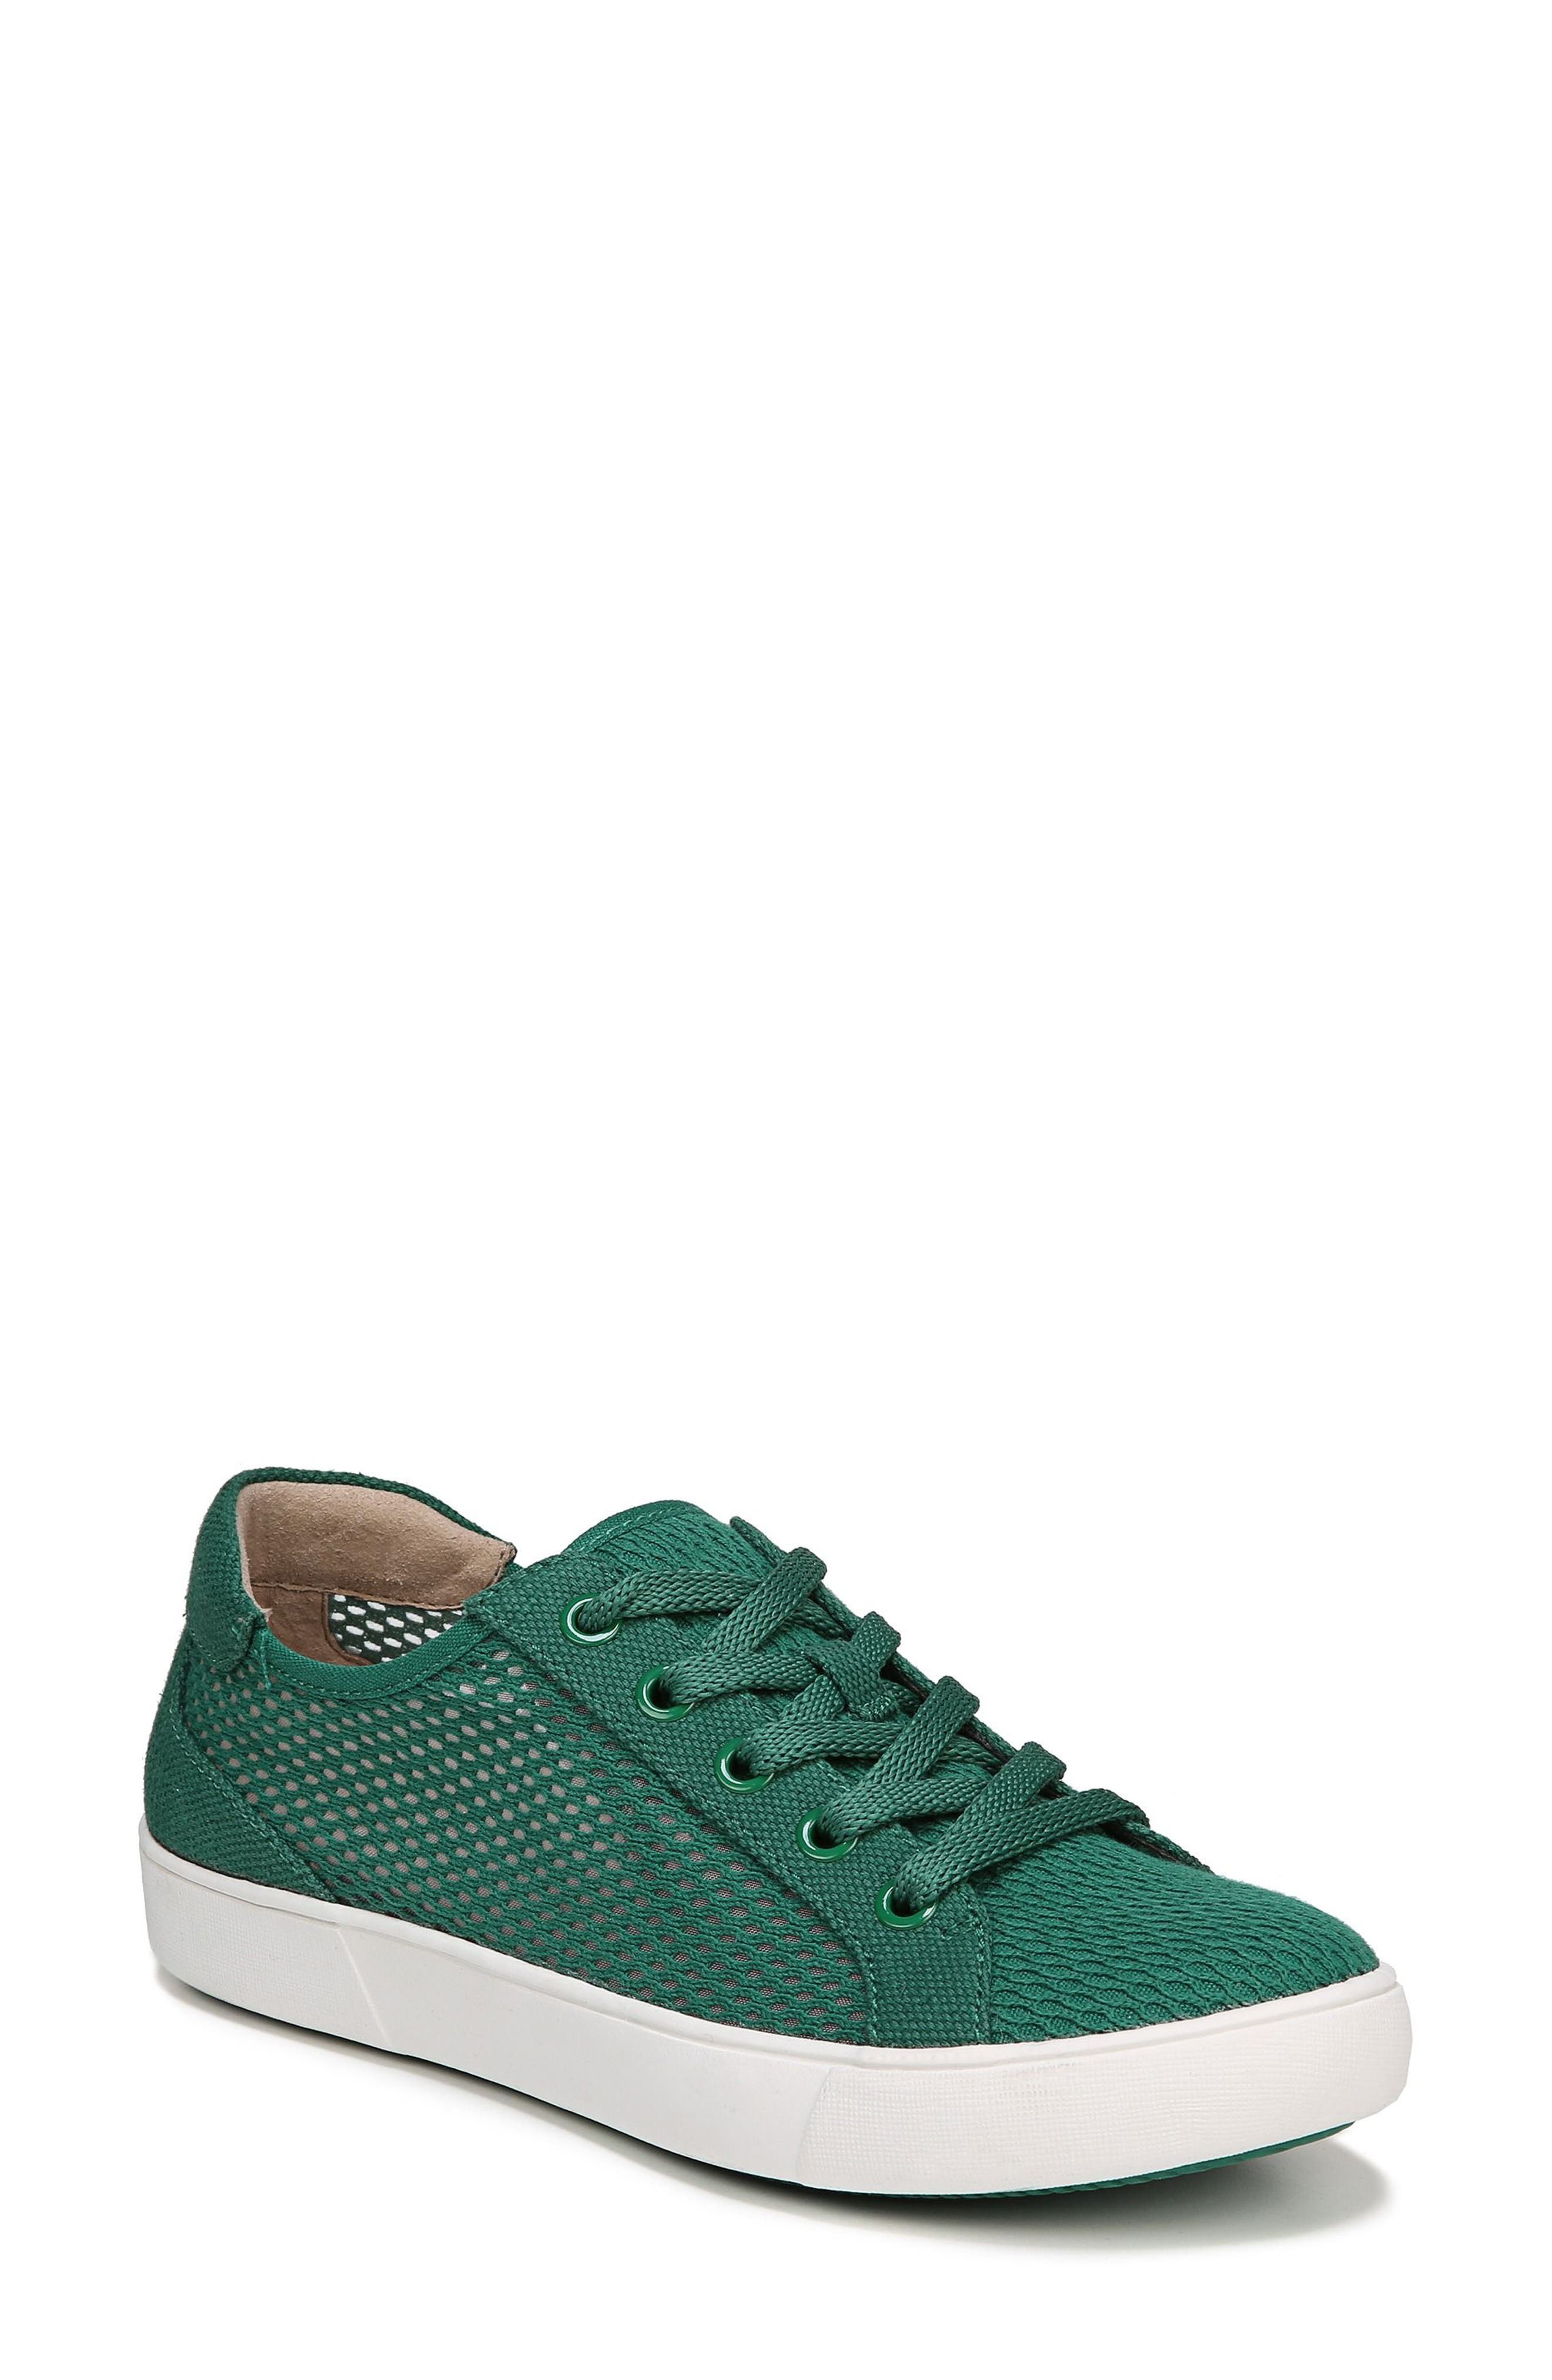 Morrison III Perforated Sneaker,                             Main thumbnail 1, color,                             Green Leather